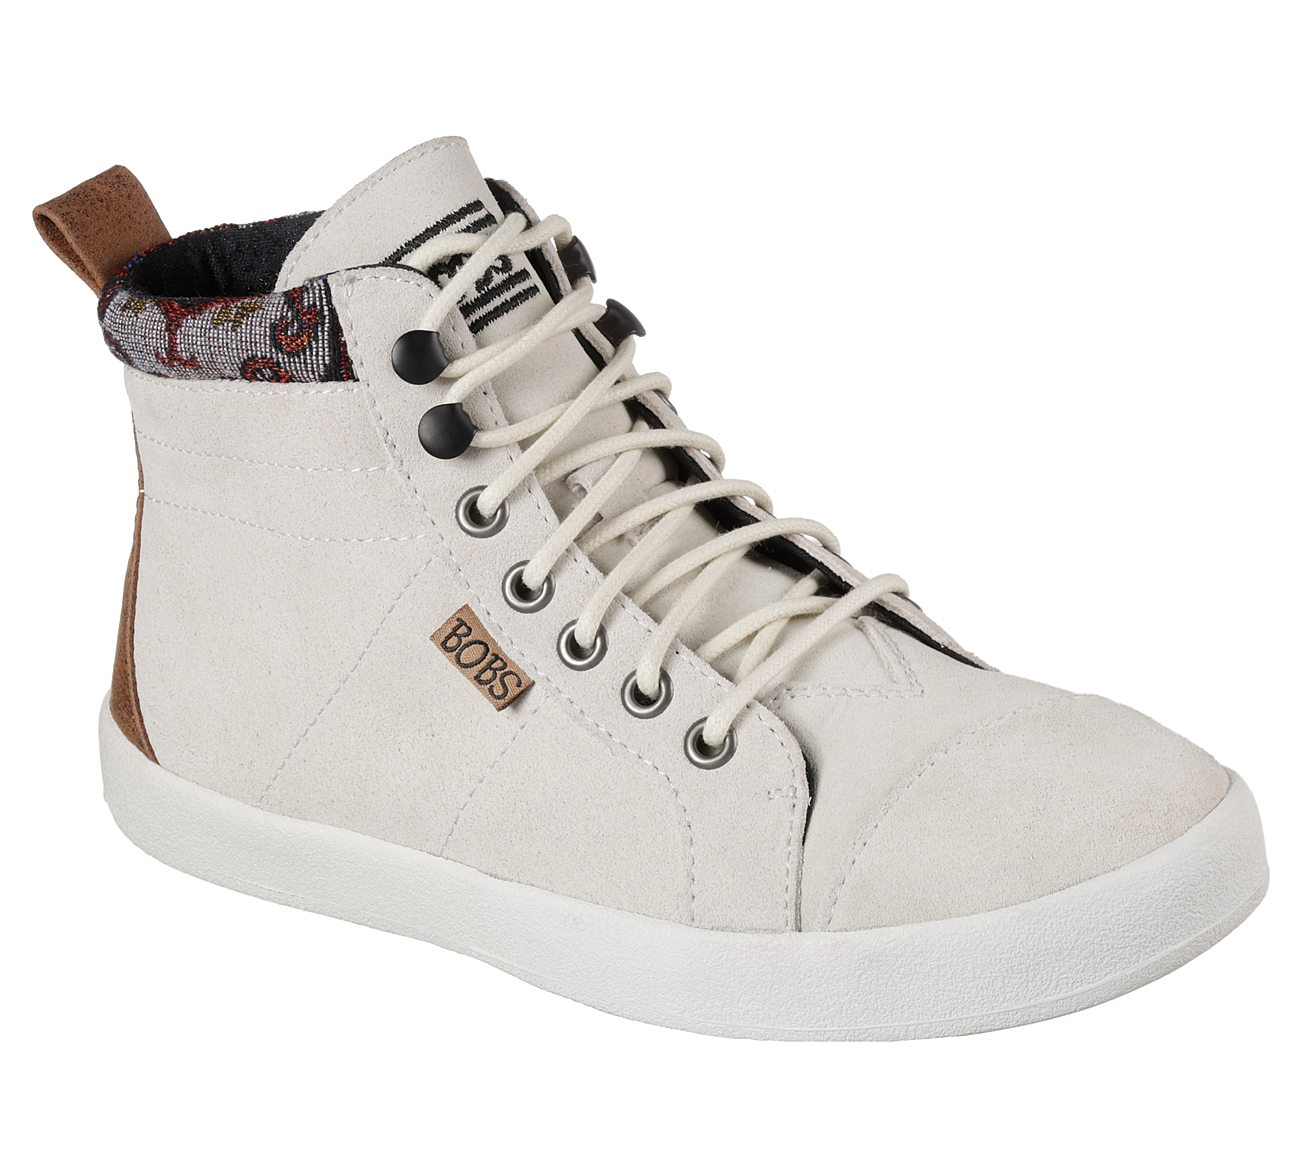 BOBS B-Loved - Static Free. $60.00. Write the First Review. Hover to zoom. Off  White